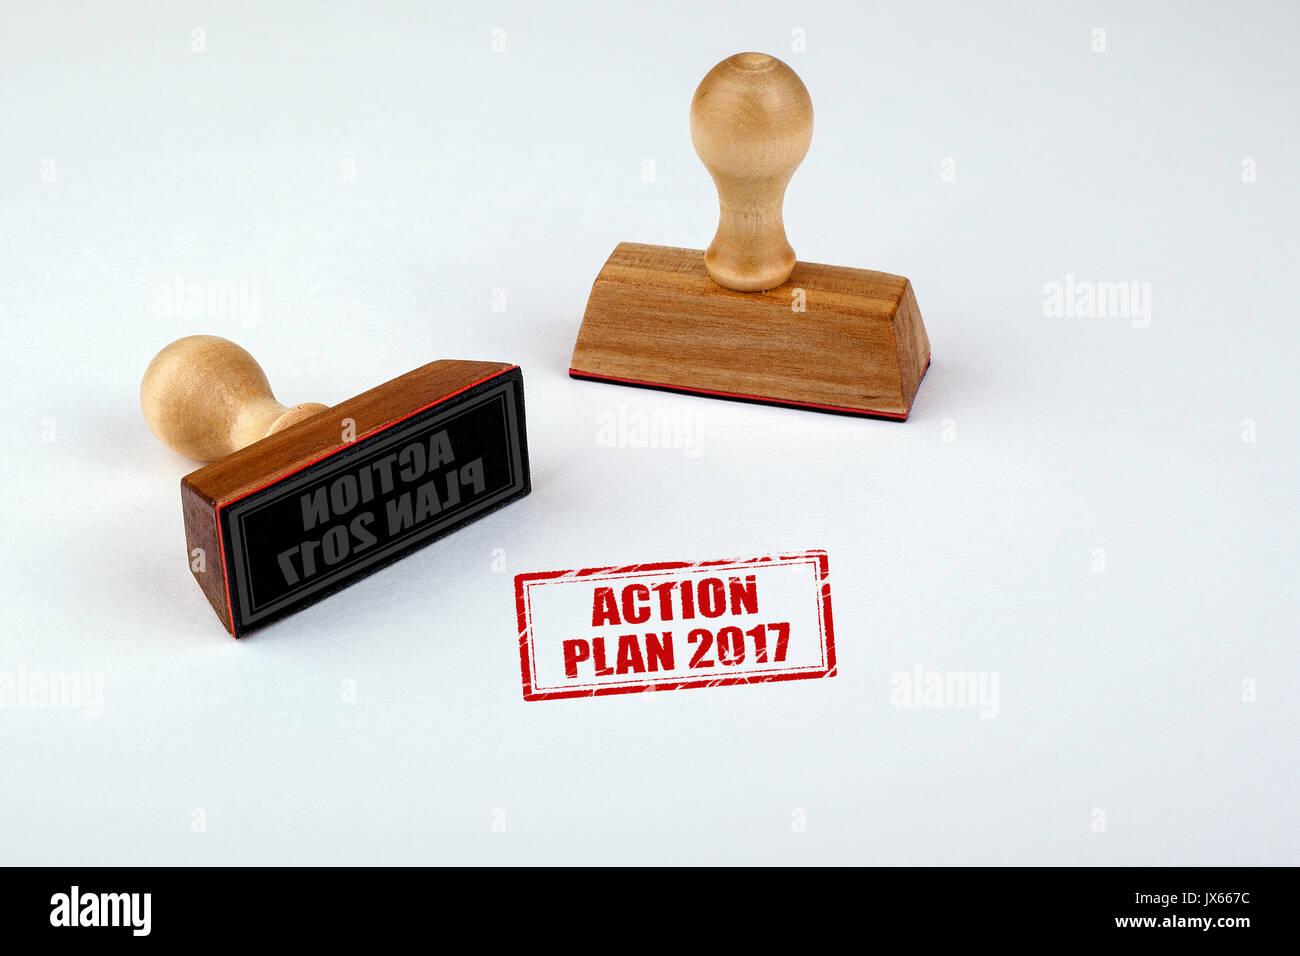 Action Plan 2017. Rubber Stamper with Wooden handle Isolated on White Background. - Stock Image